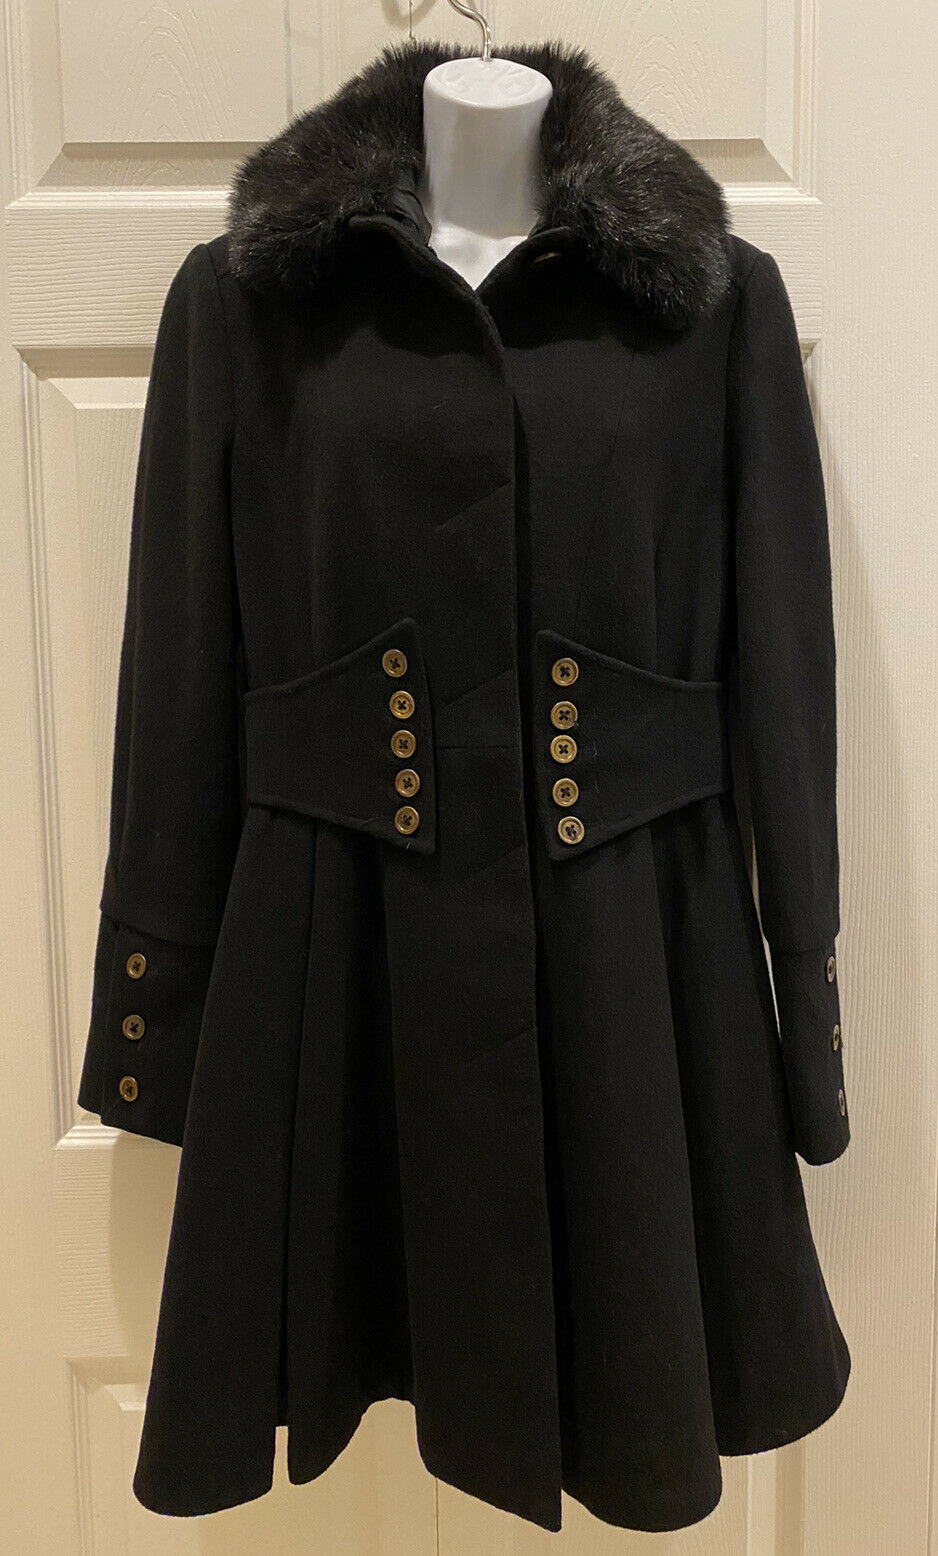 Betsey Johnson Black Wool Blend Fit & Flare Corset Coat Removable Faux Fur SMALL